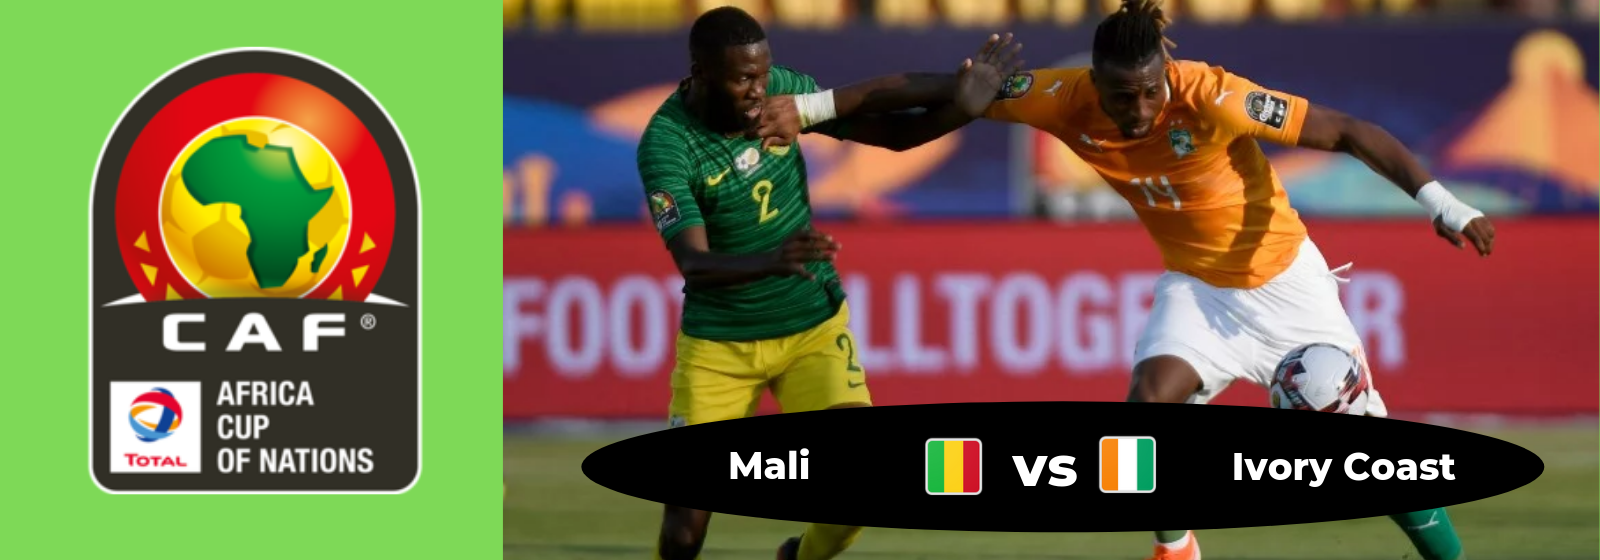 Africa Cup of Nations Mali Vs. Ivory Coast Asian Connect